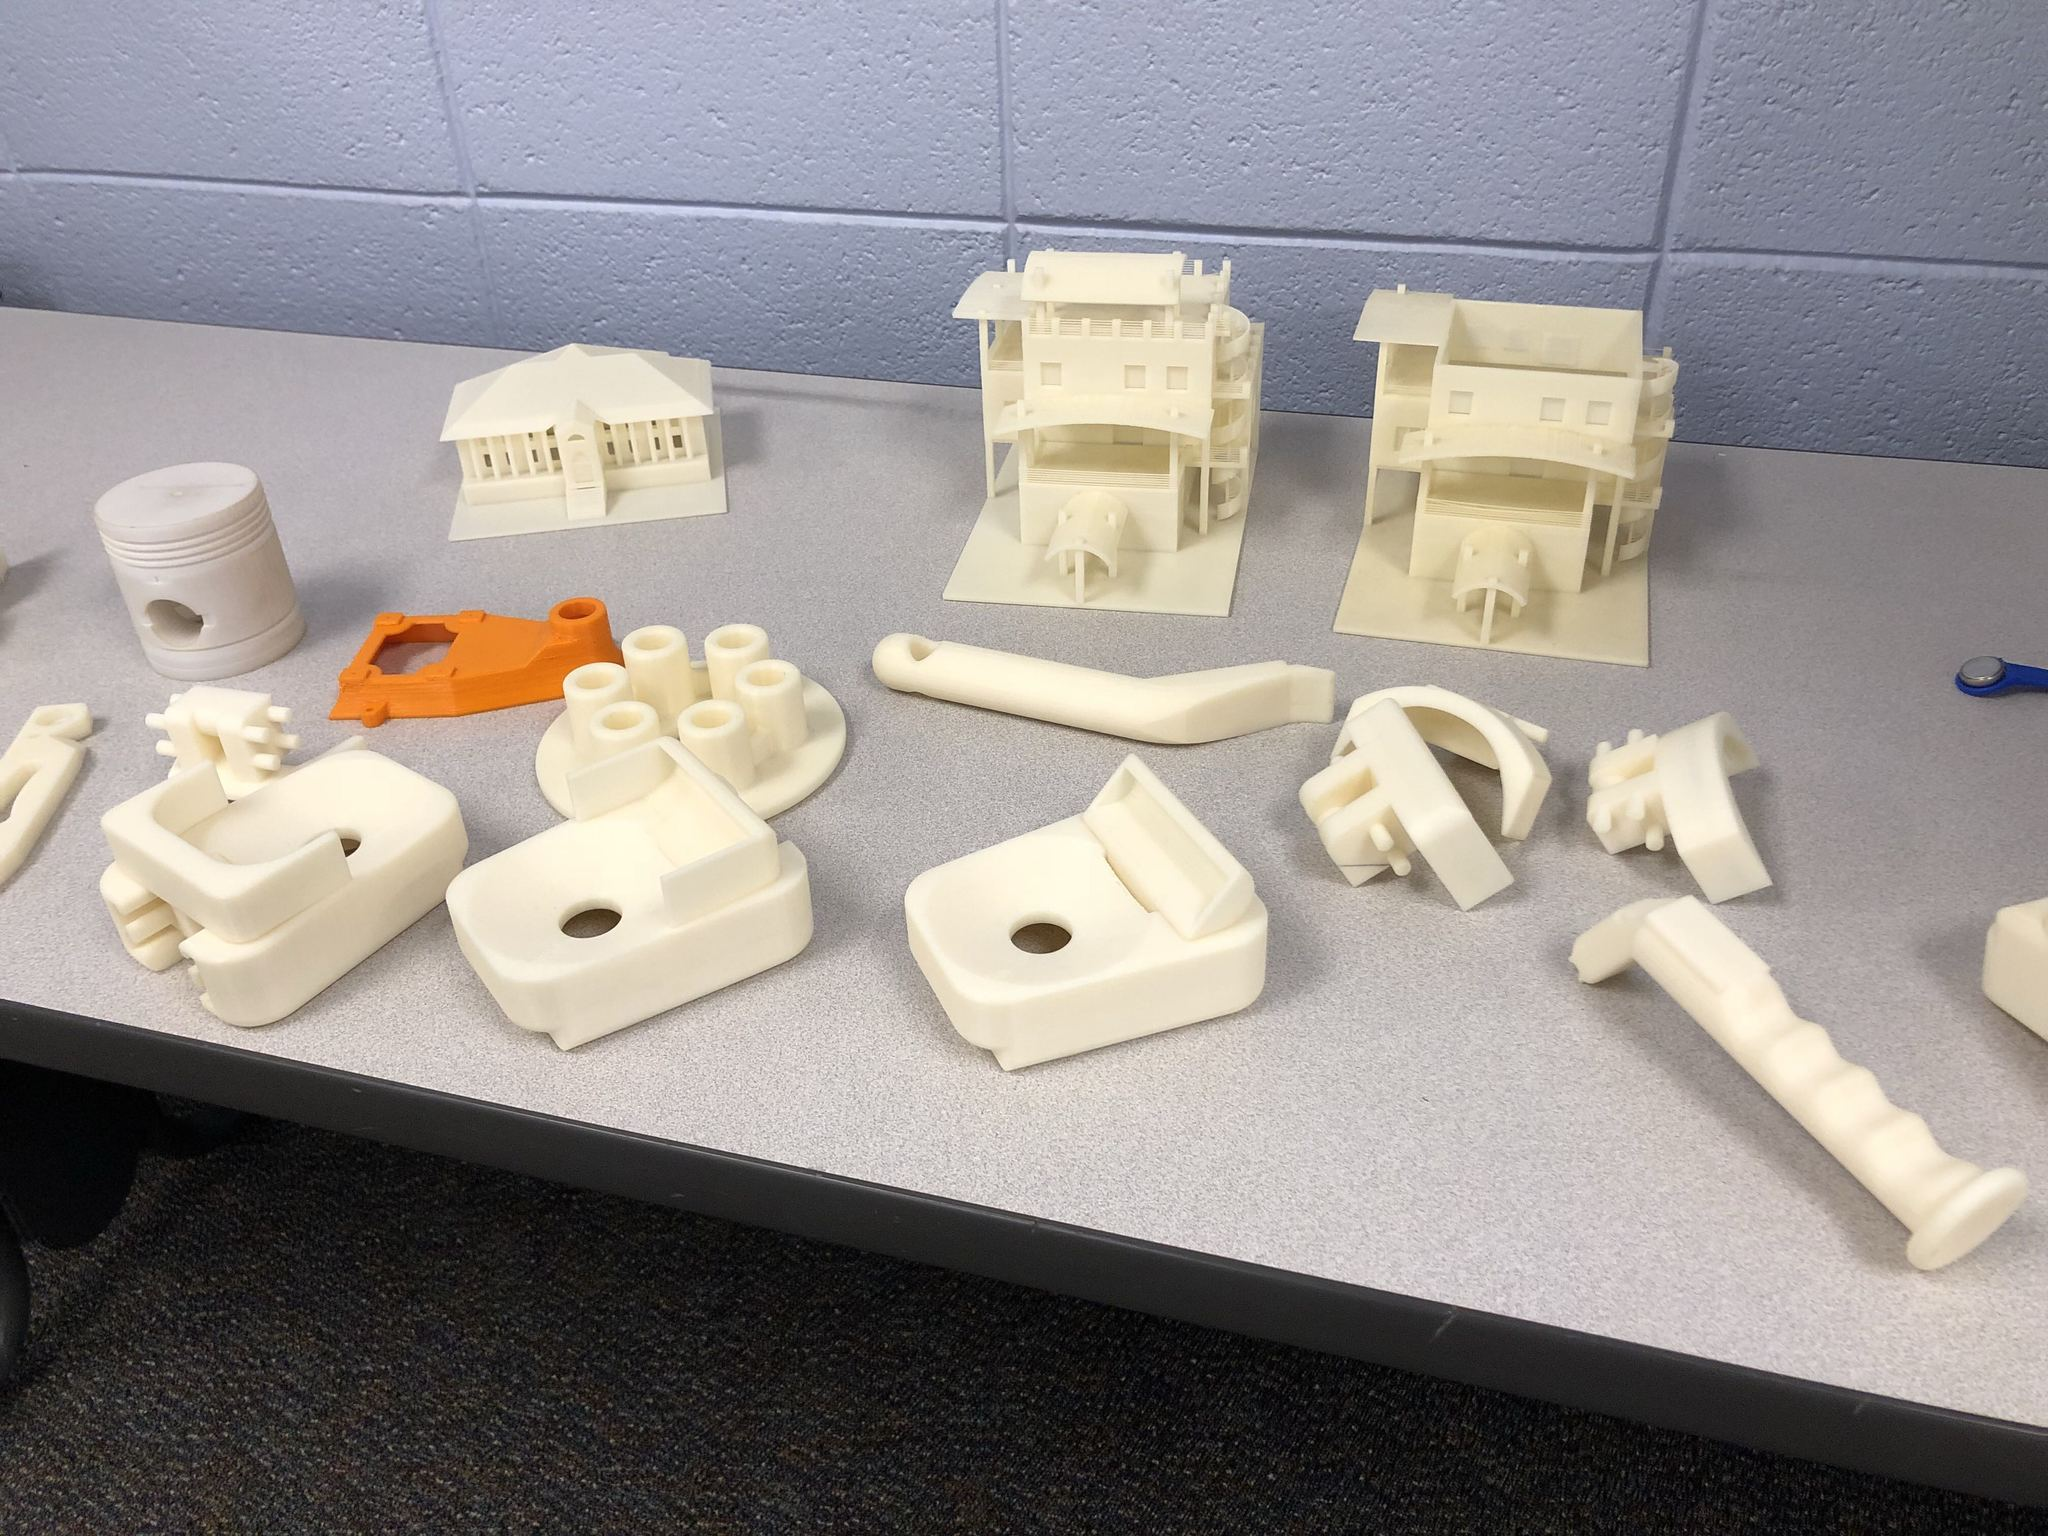 A variety of 3D printed parts, mostly white plastic, are arranged on a table top.